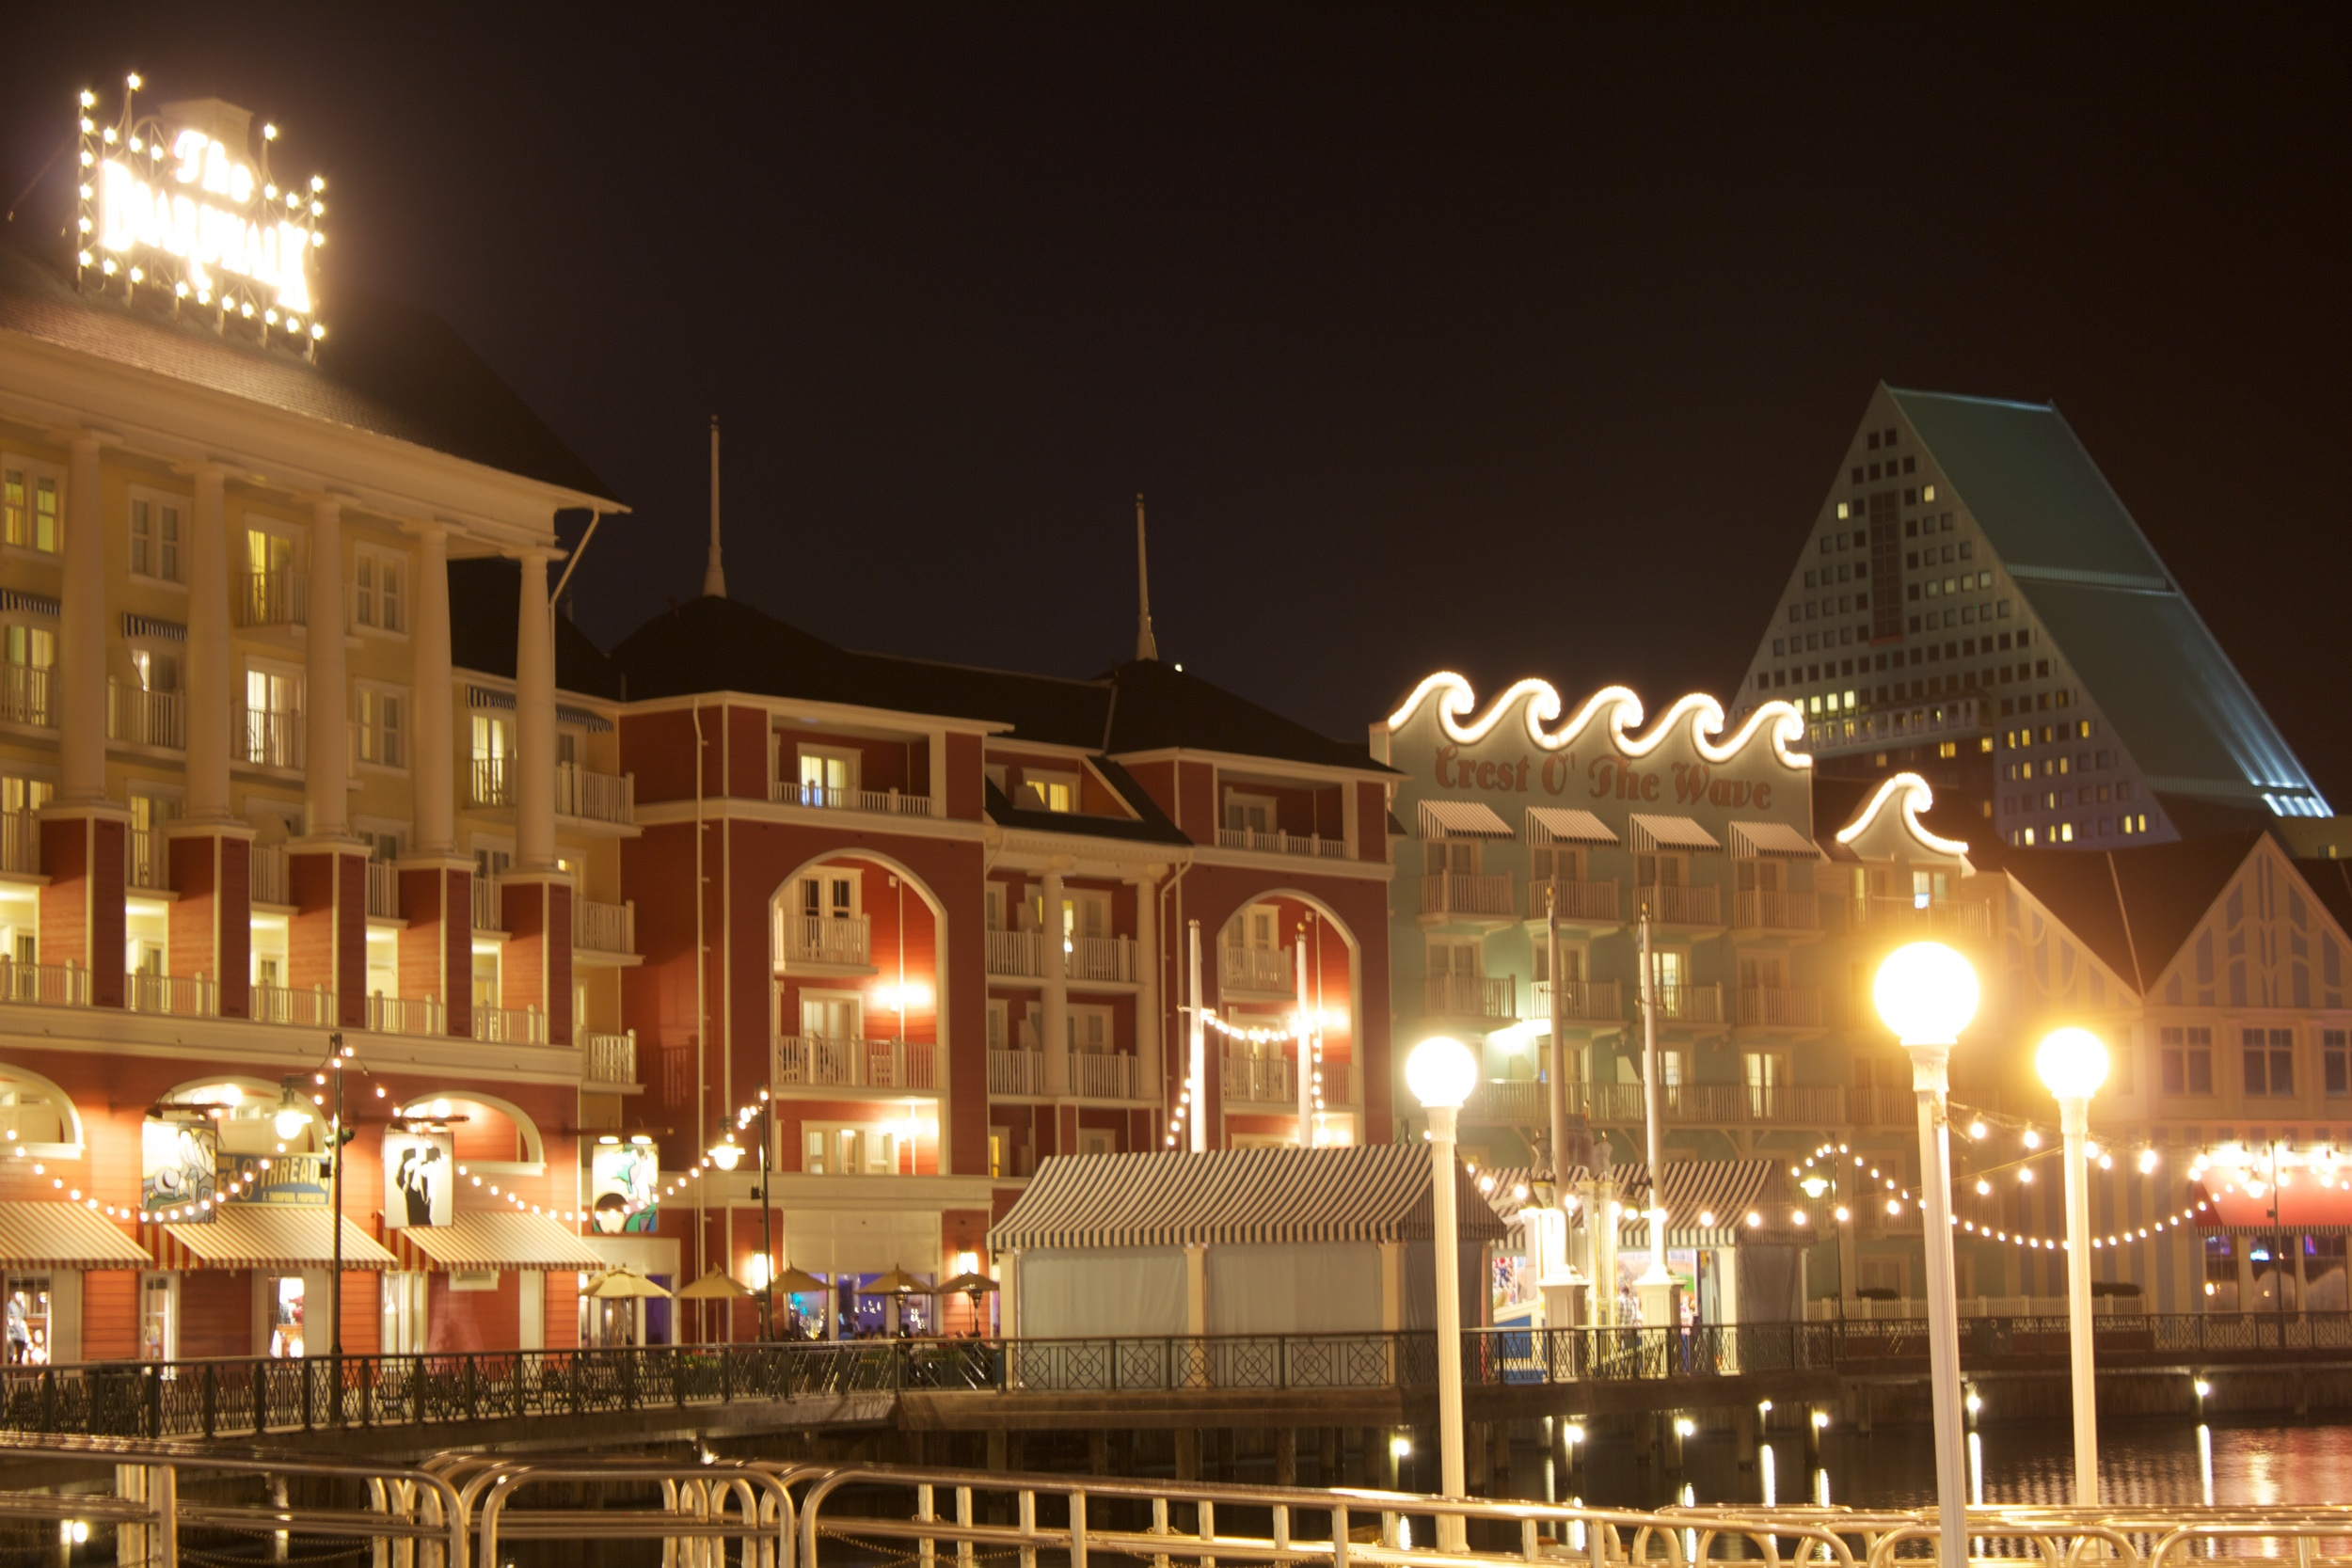 Disney's Boardwalk is one of the most immersive resorts on property. It blends a resort with shopping, dining and a convenient way to get to Epcot.